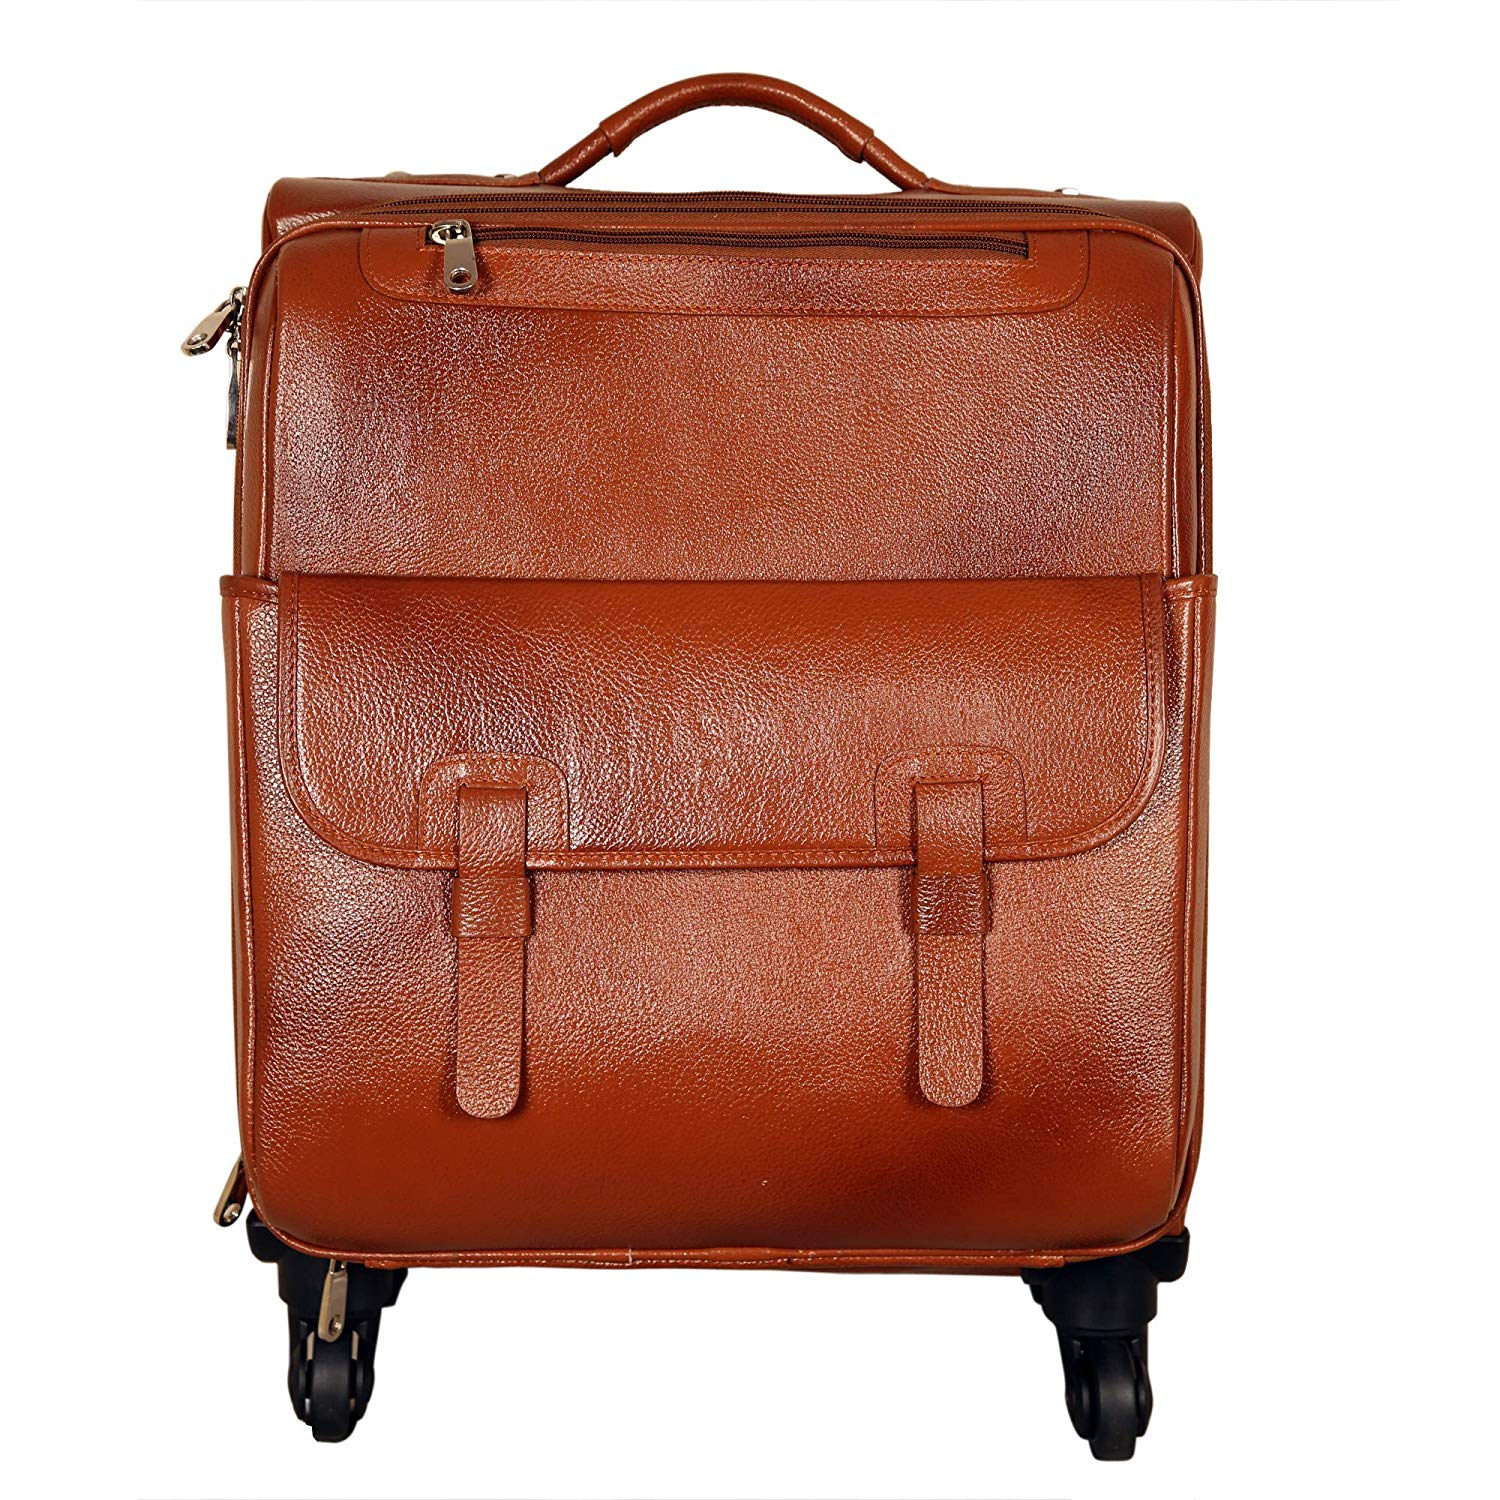 Tourister 100% Genuine Leather Cabin Size 15.6 Inch Laptop Trolley Luggage Bag. (TAN)